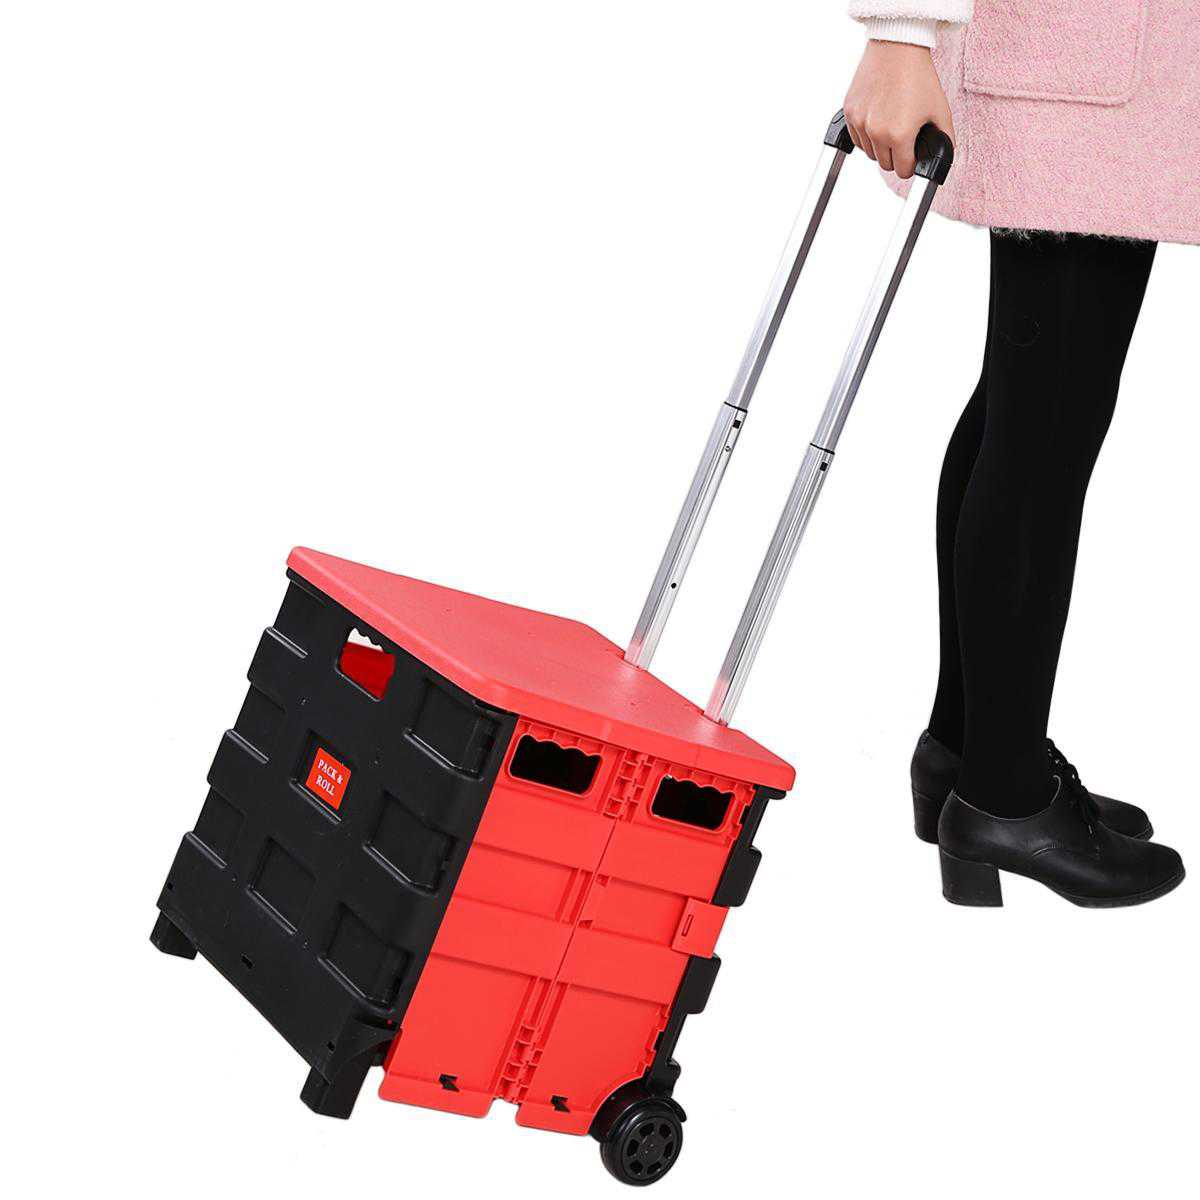 Folding Cart Two-Wheeled Hand Cart Truck Collapsible Cart Shopping Travel Trolley Handcart GlSTE